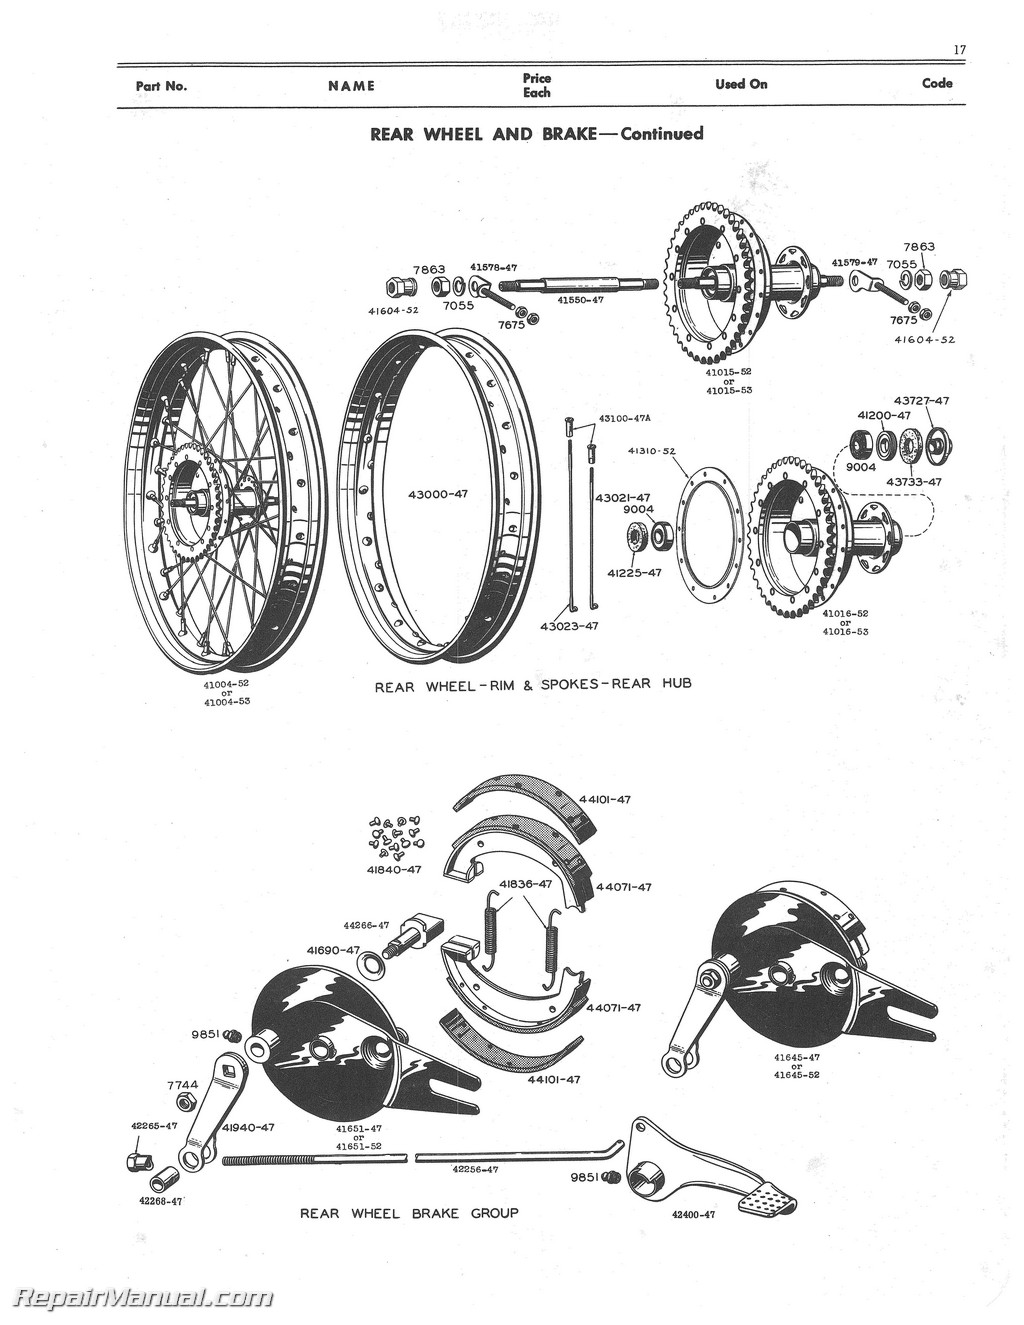 Harley Davidson Engine Exploded View, Harley, Free Engine